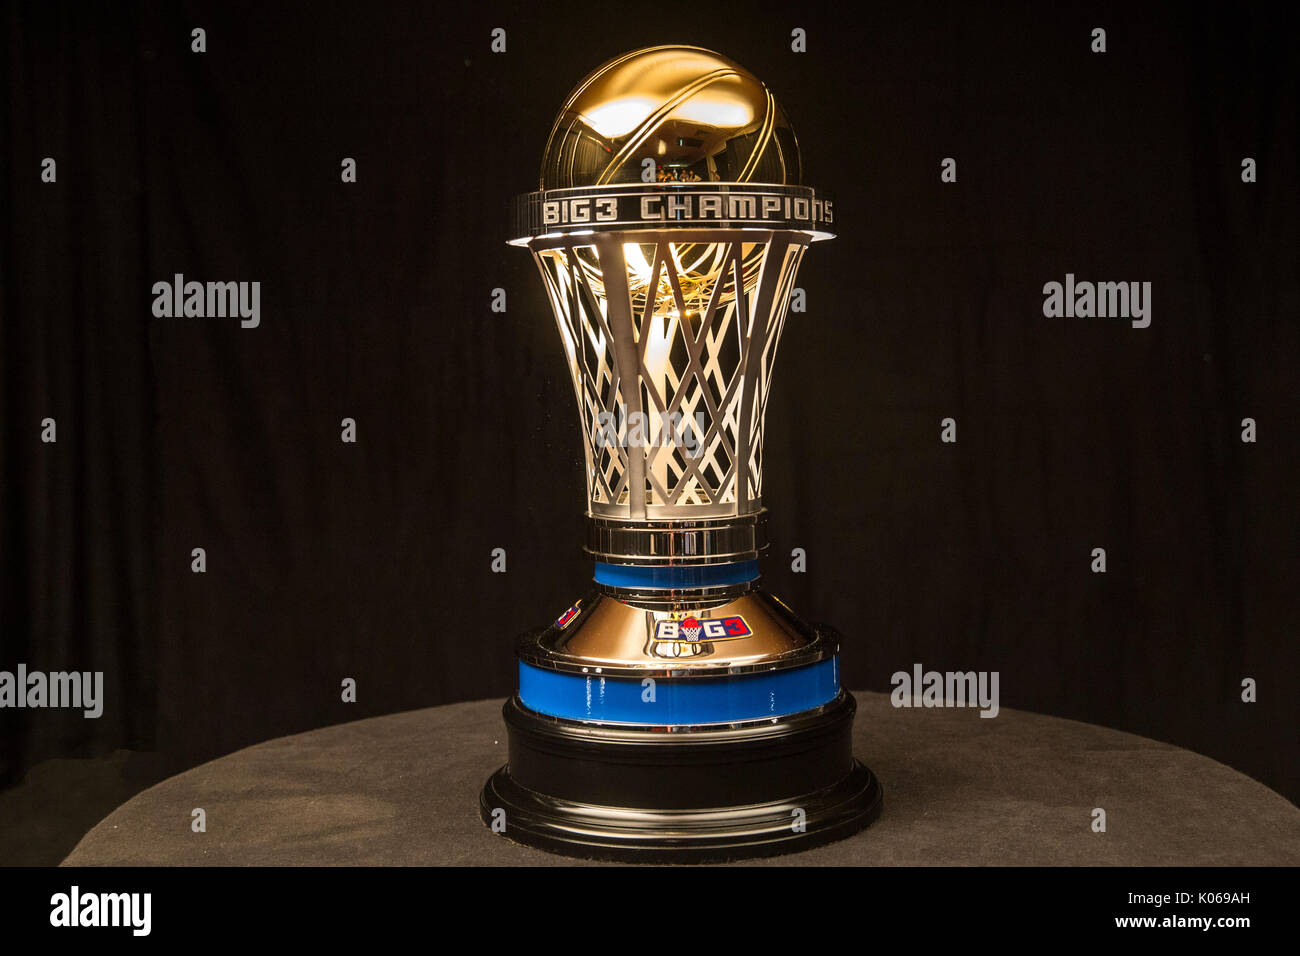 A View 24 Karat Gold 2017 BIG3 Championship Trophycrafted By S R BLACKINTONmakers Kentucky Derby Trophy For Over 40 Consecutive Yearsrevealed First